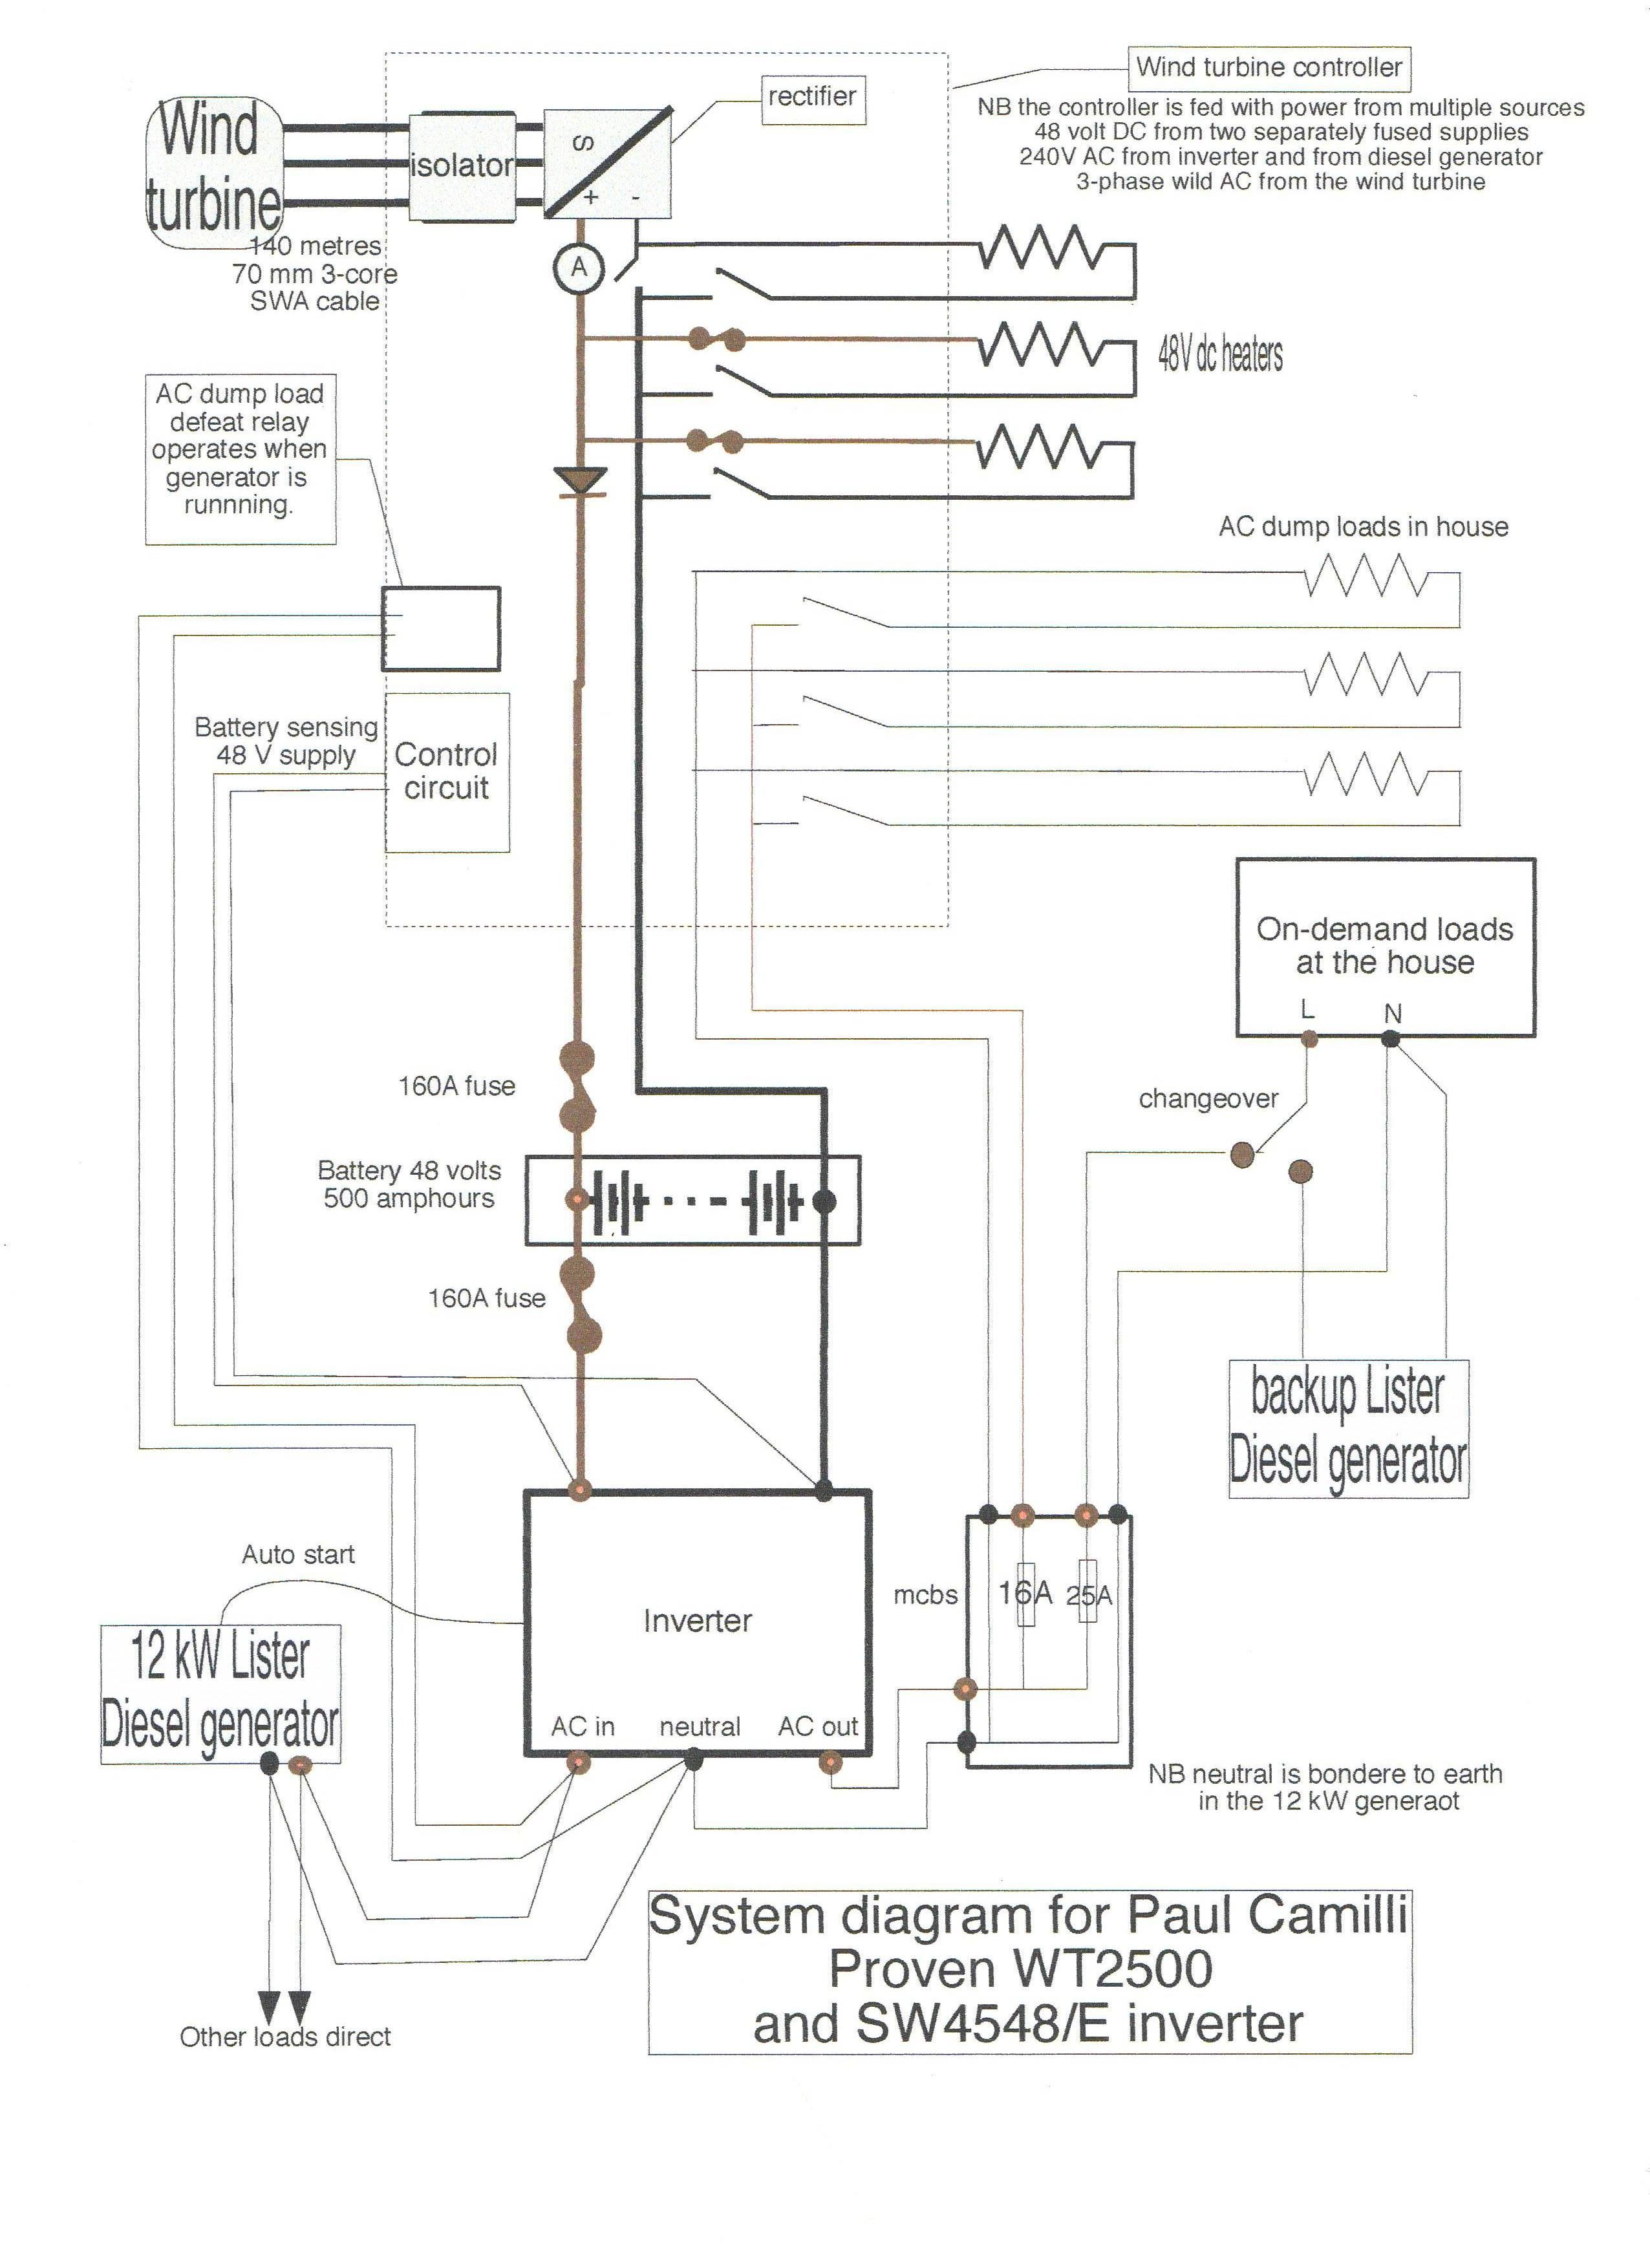 small resolution of wind turbine wiring diagram homesteading pinterest wind rh pinterest com wind turbine blades wind turbine diagram